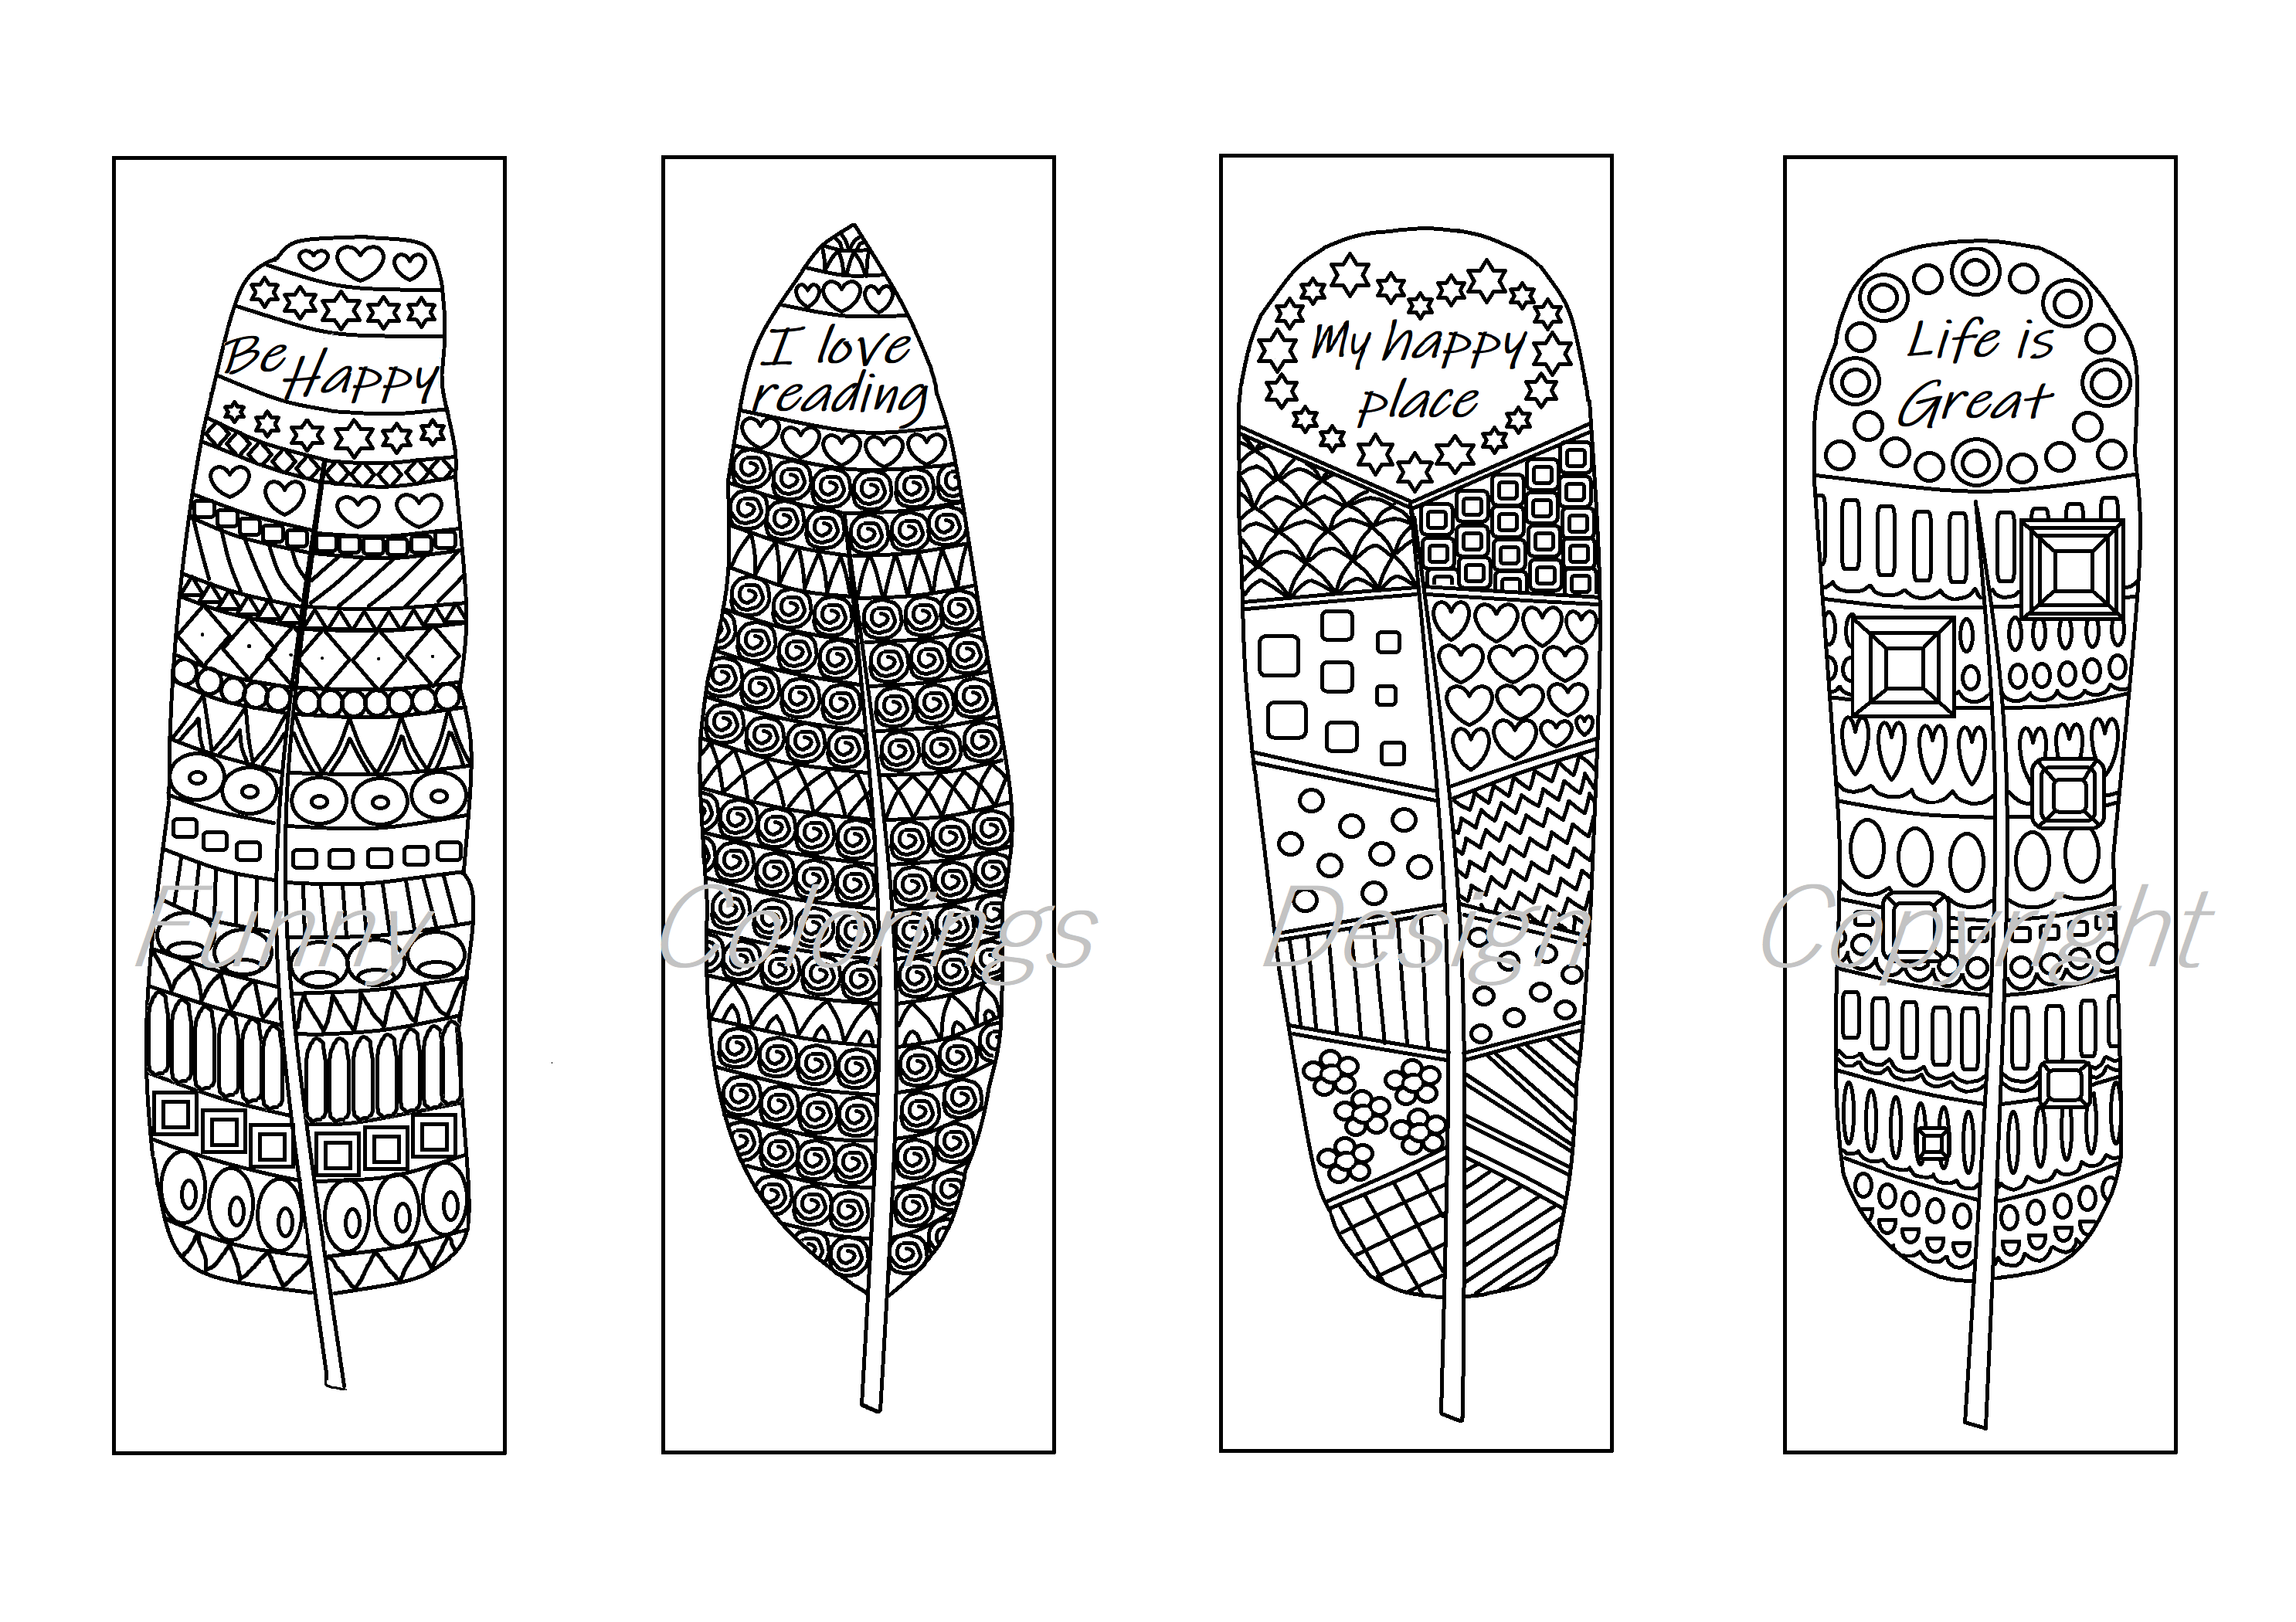 coloring bookmarks thats printable items similar to coloring bookmarks zendoodle zentangle bookmarks printable thats coloring